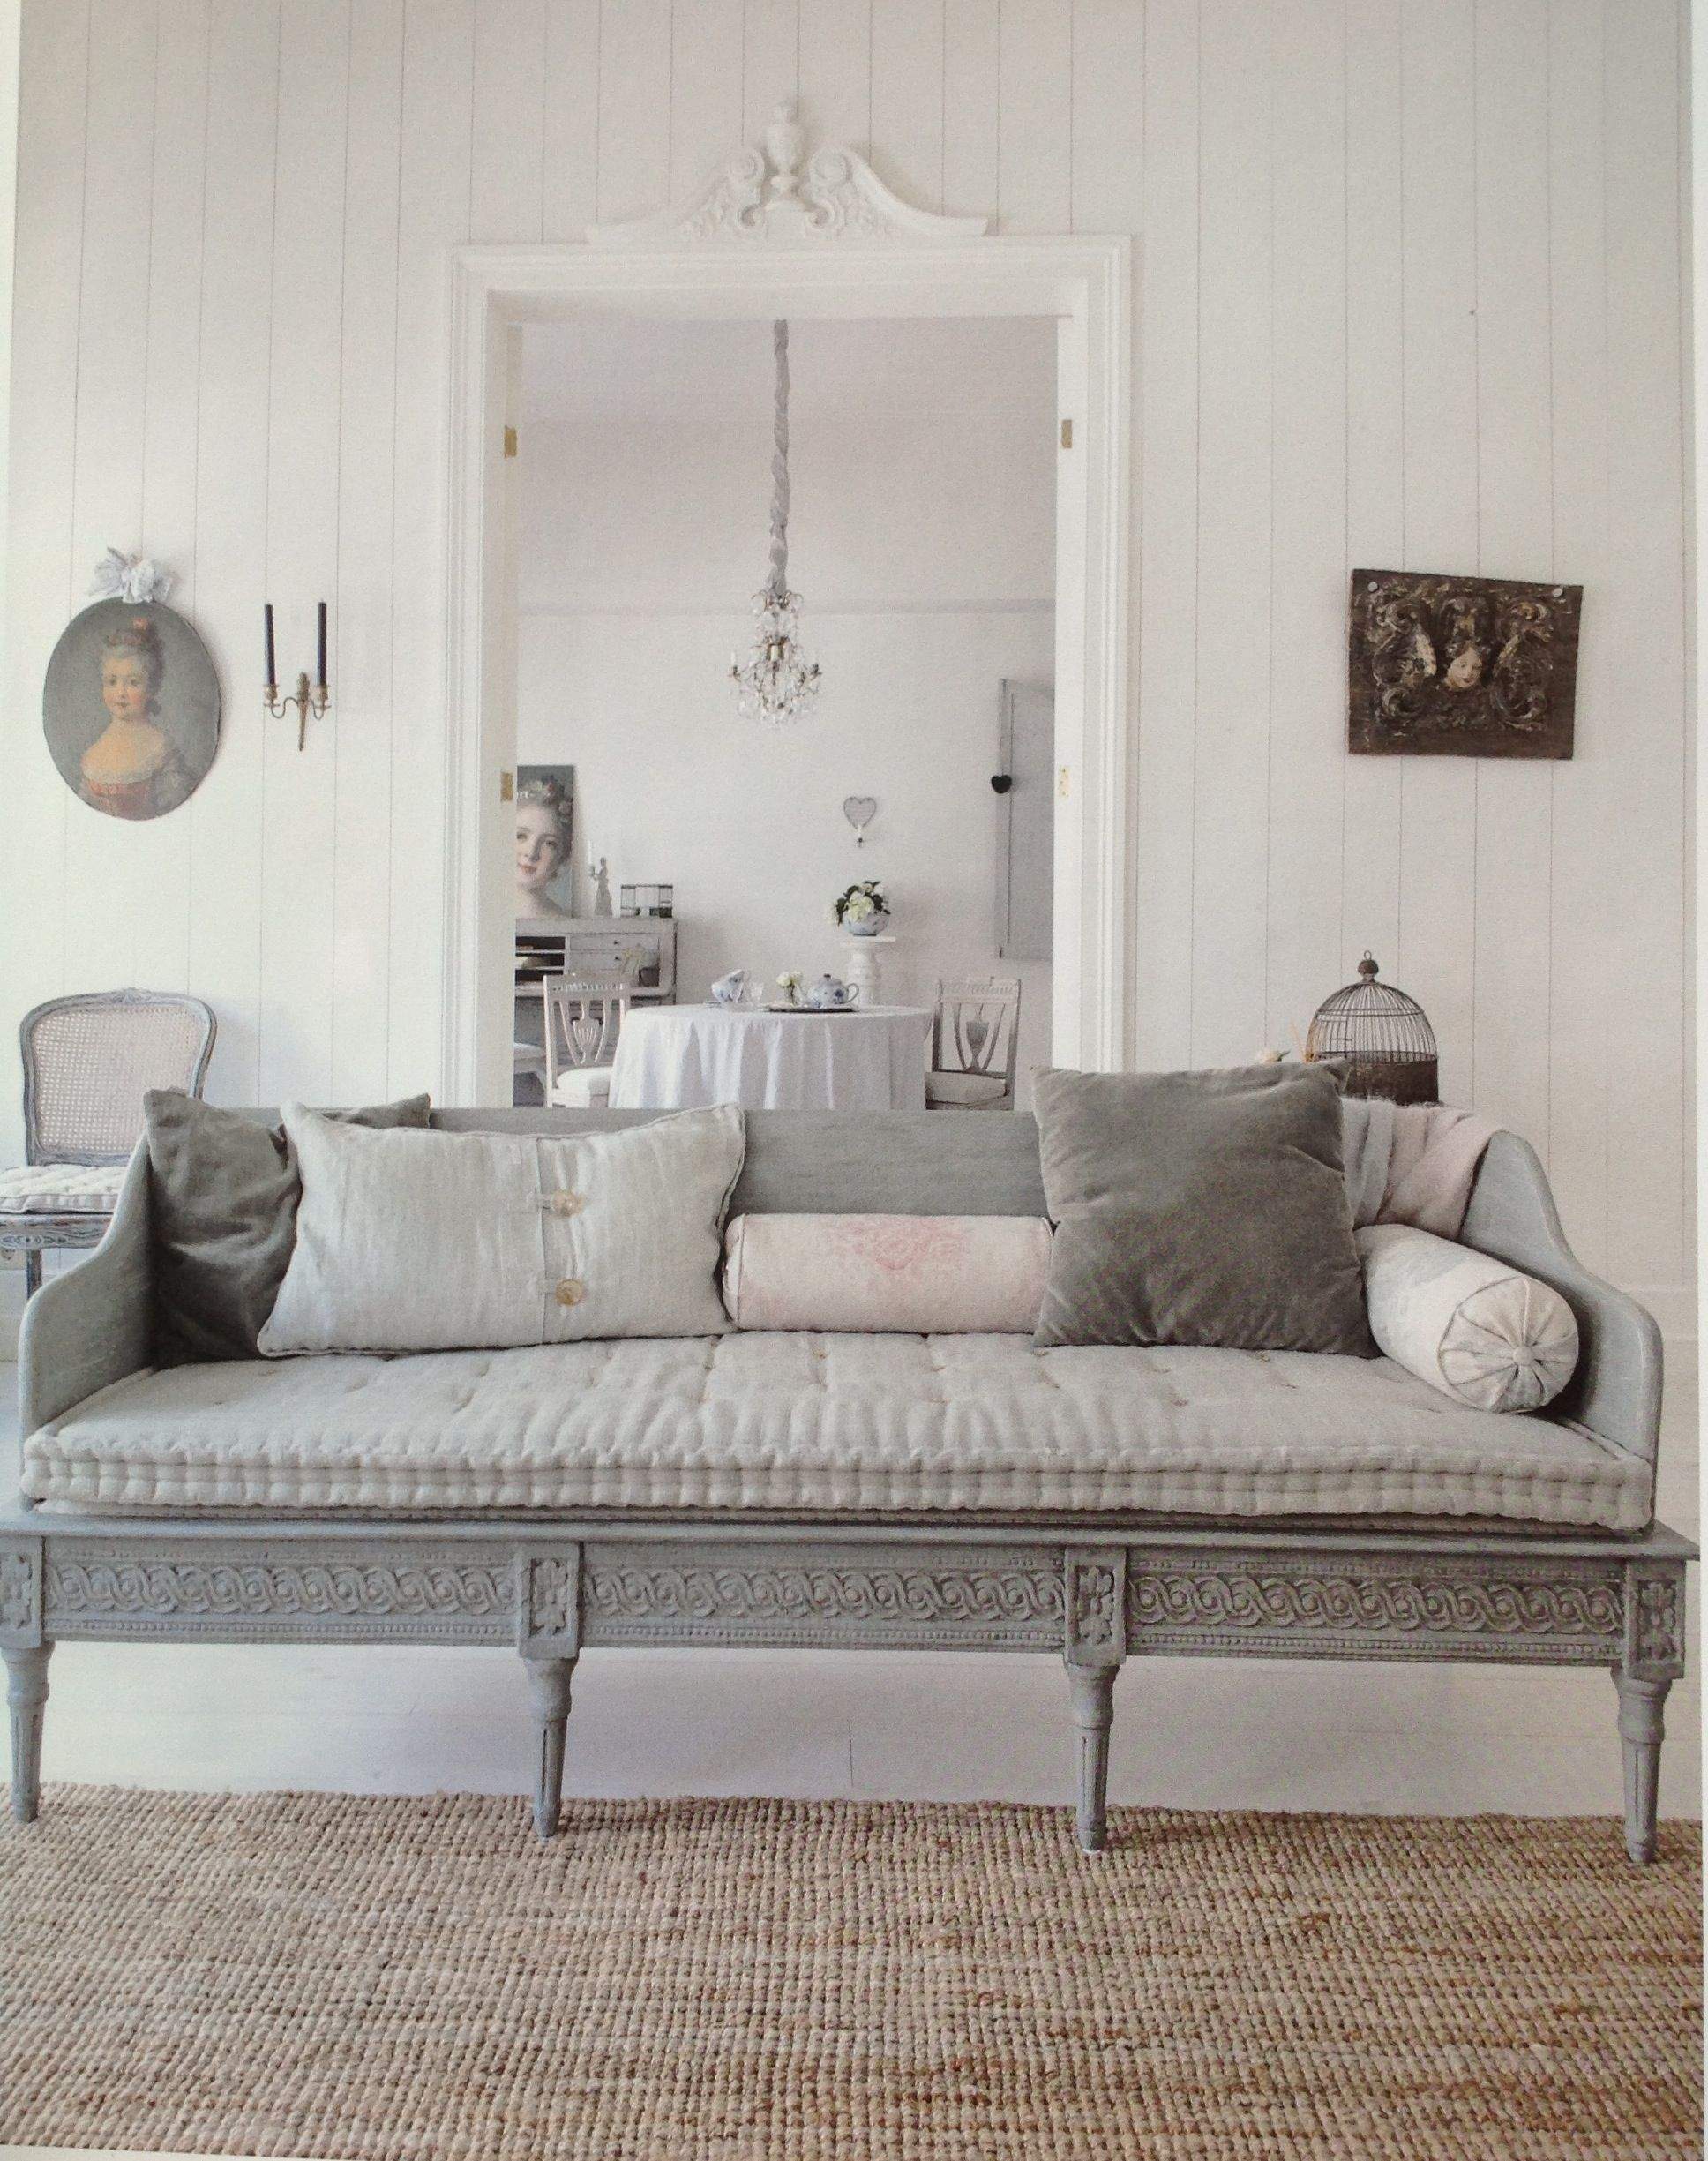 Inspiration in White Swedish Style